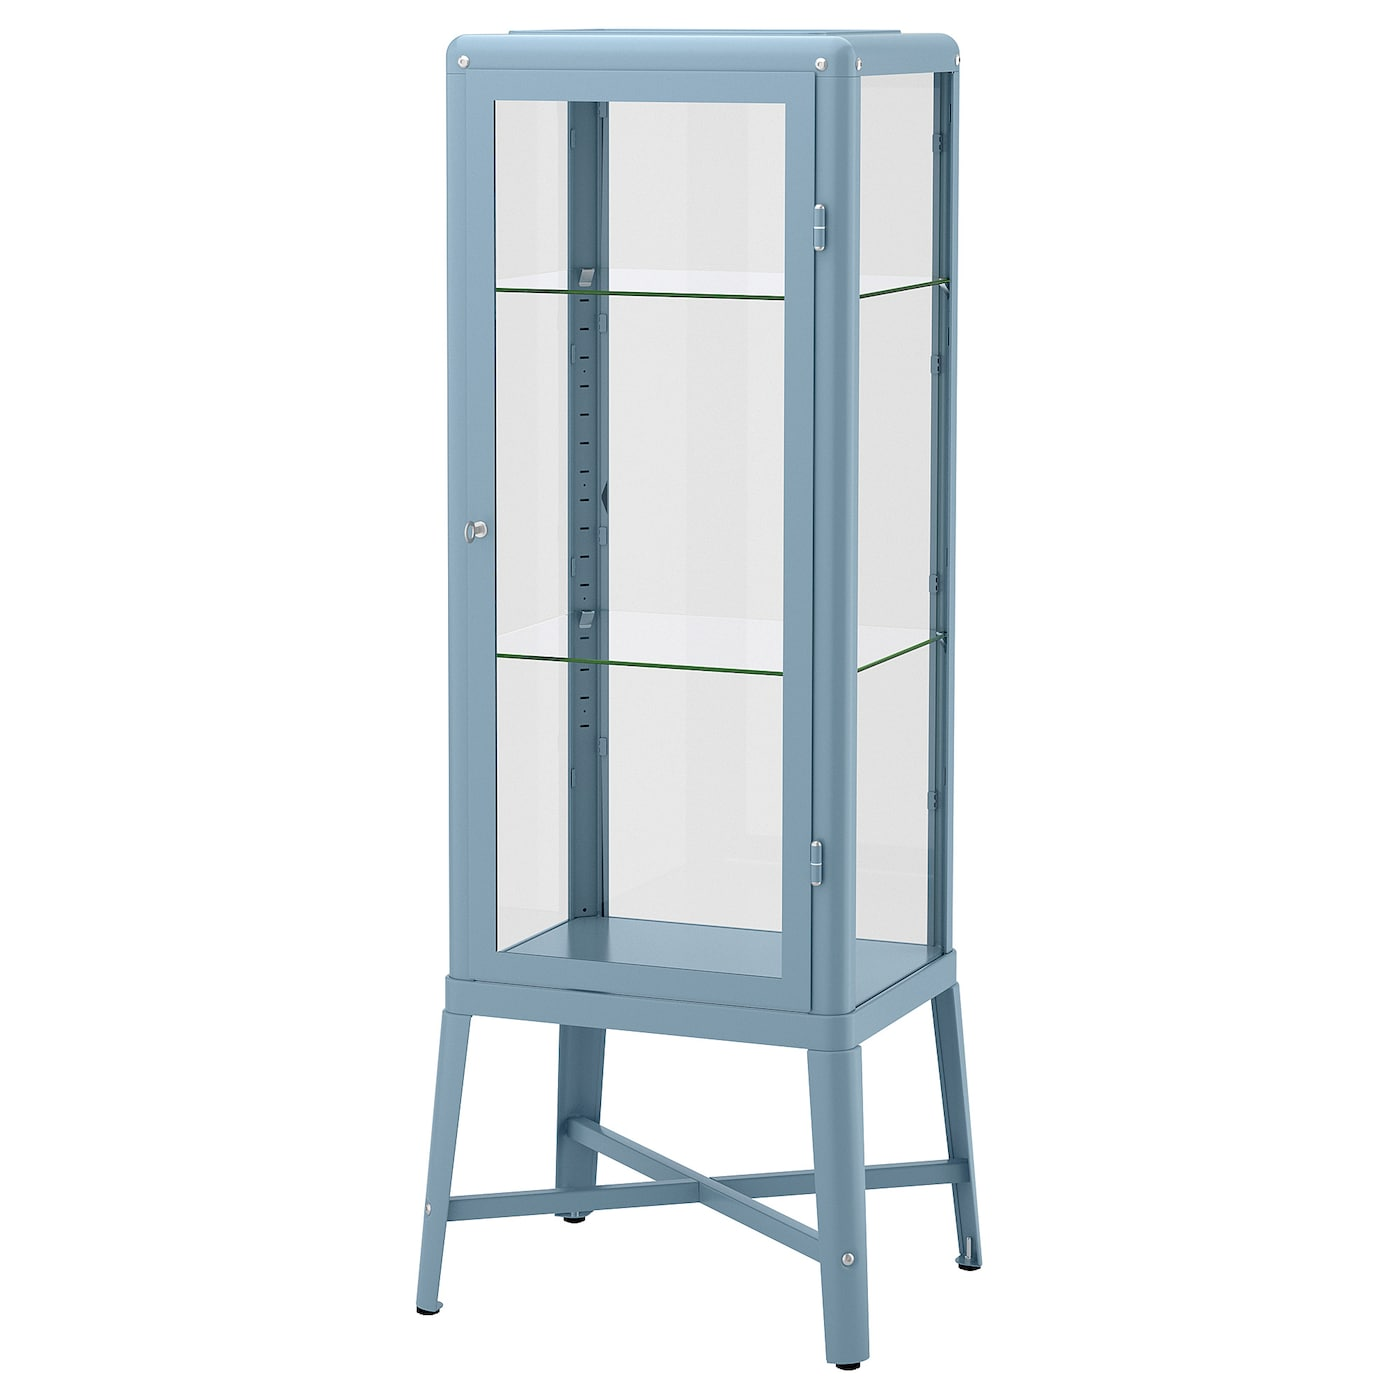 Perfect IKEA FABRIKÖR Glass Door Cabinet